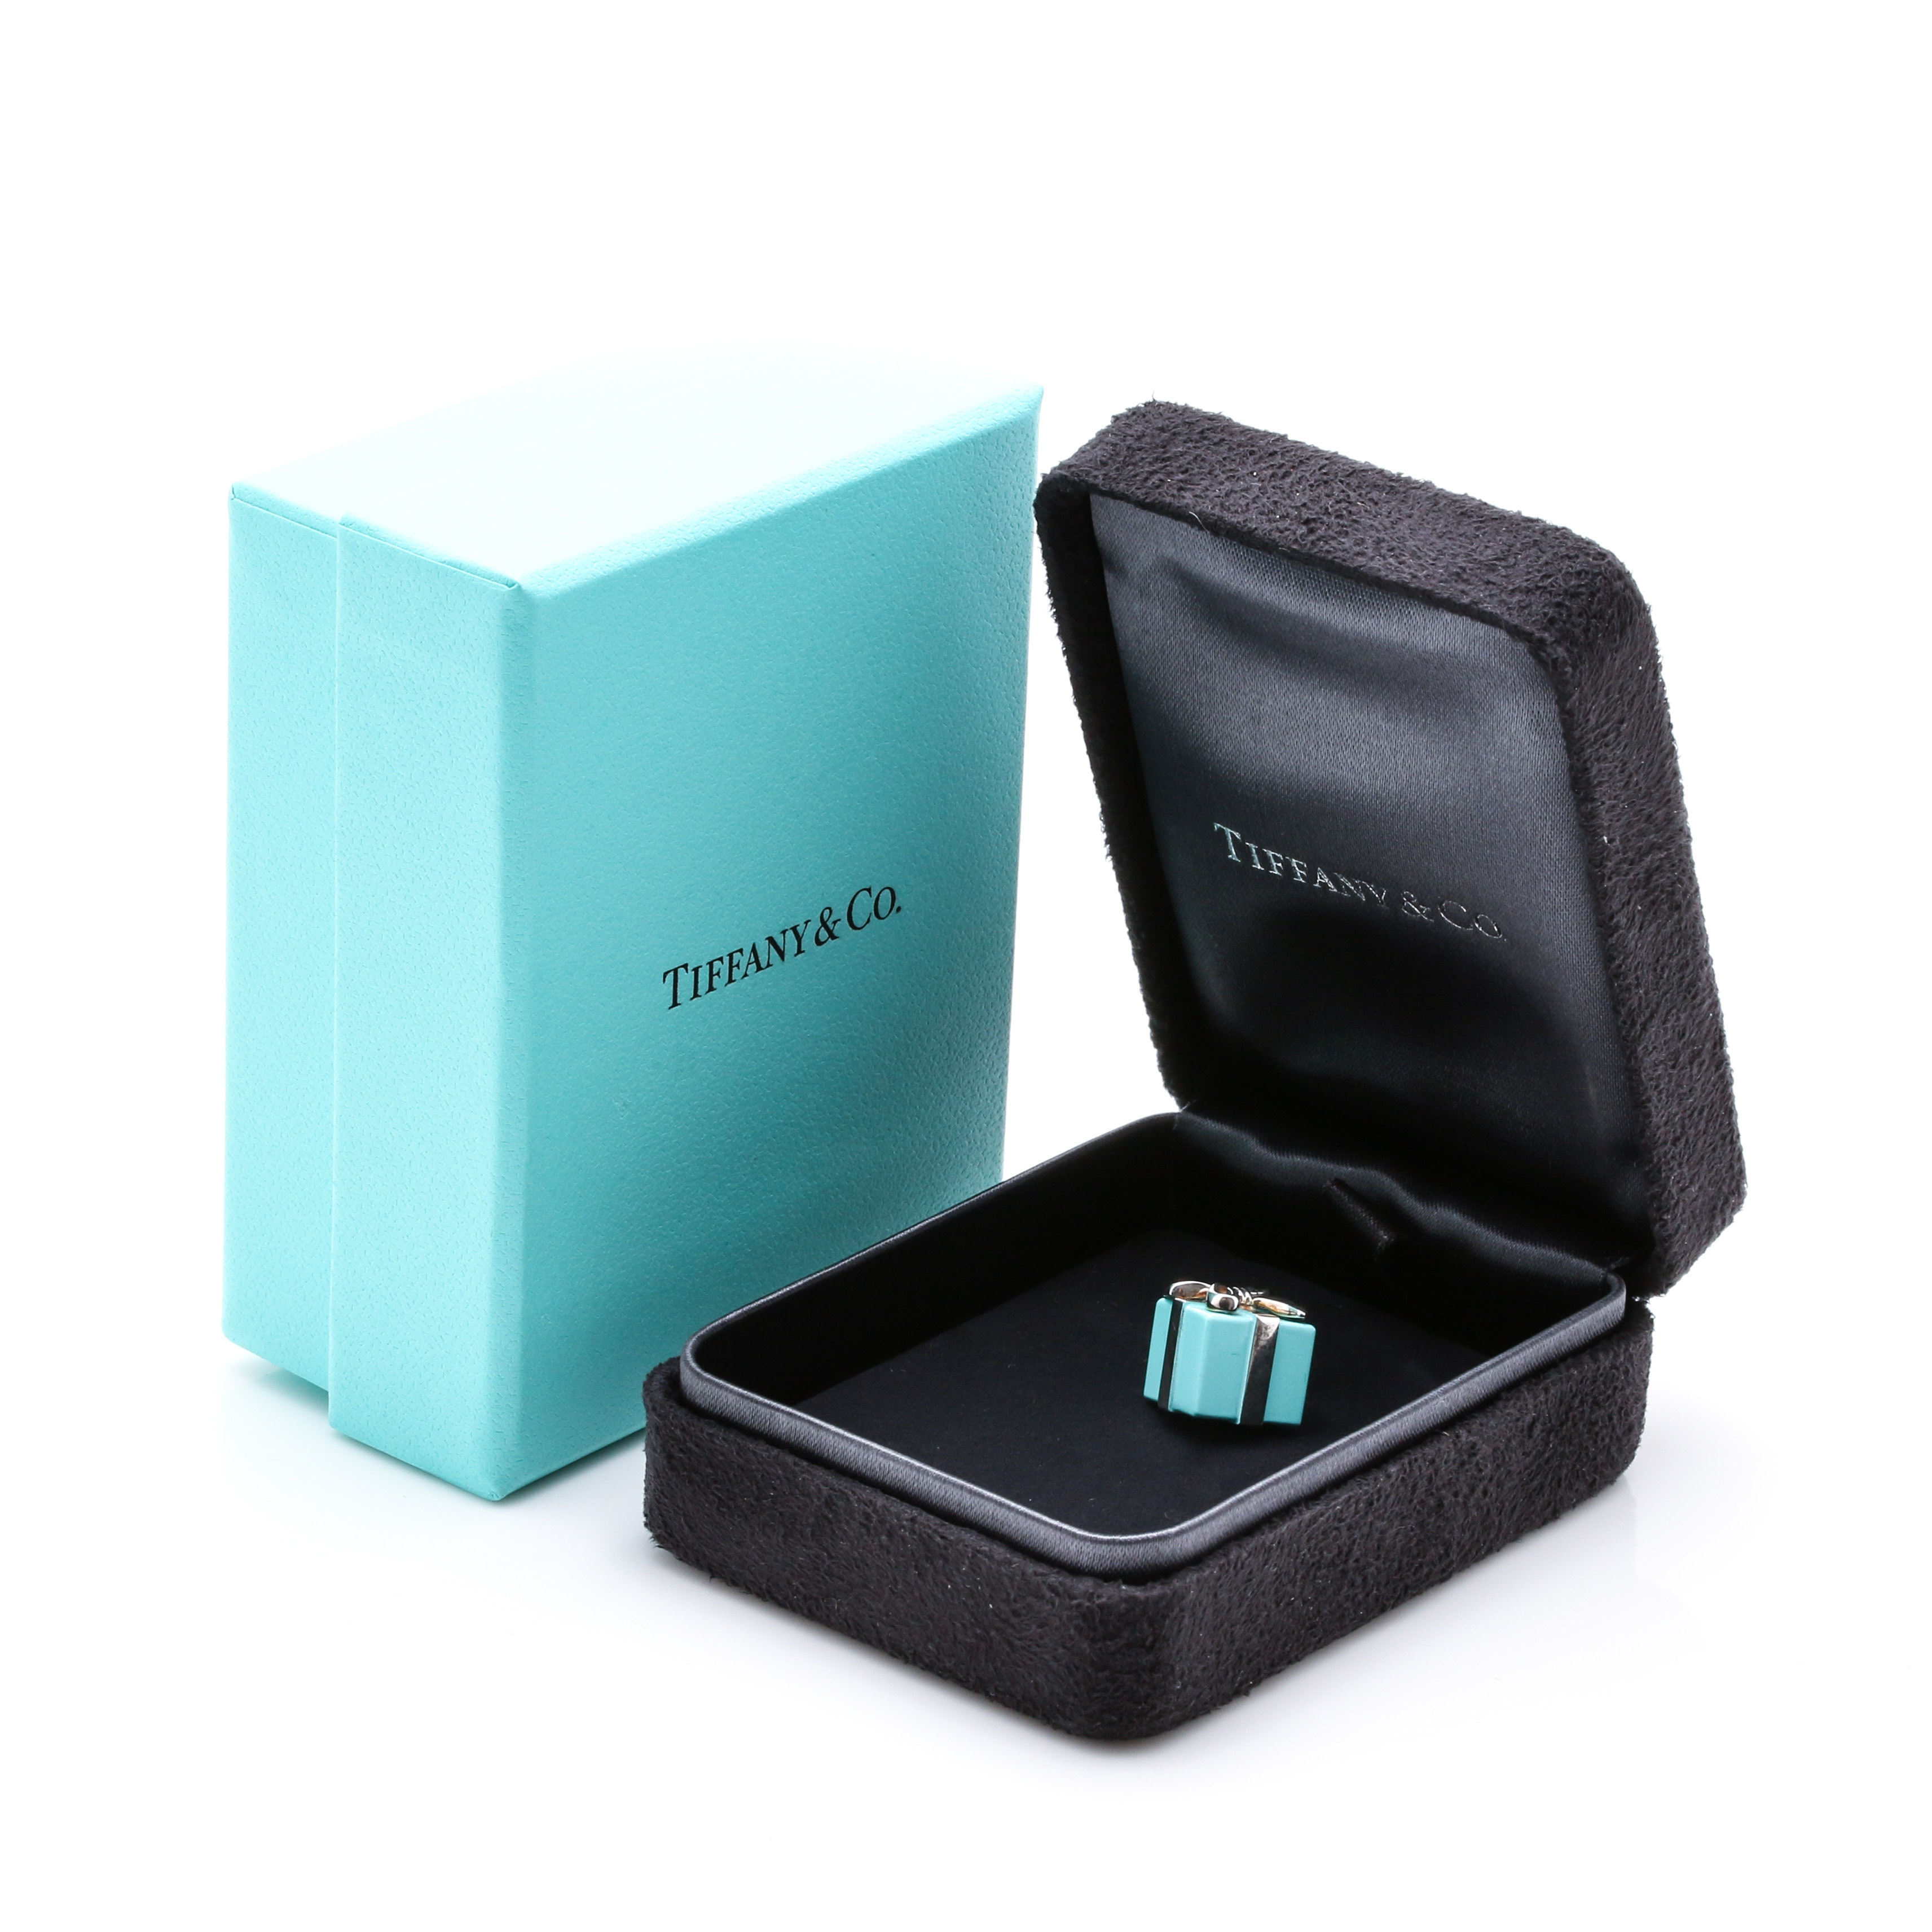 Tiffany & Co. Sterling Silver and Enamel Gift Box Charm